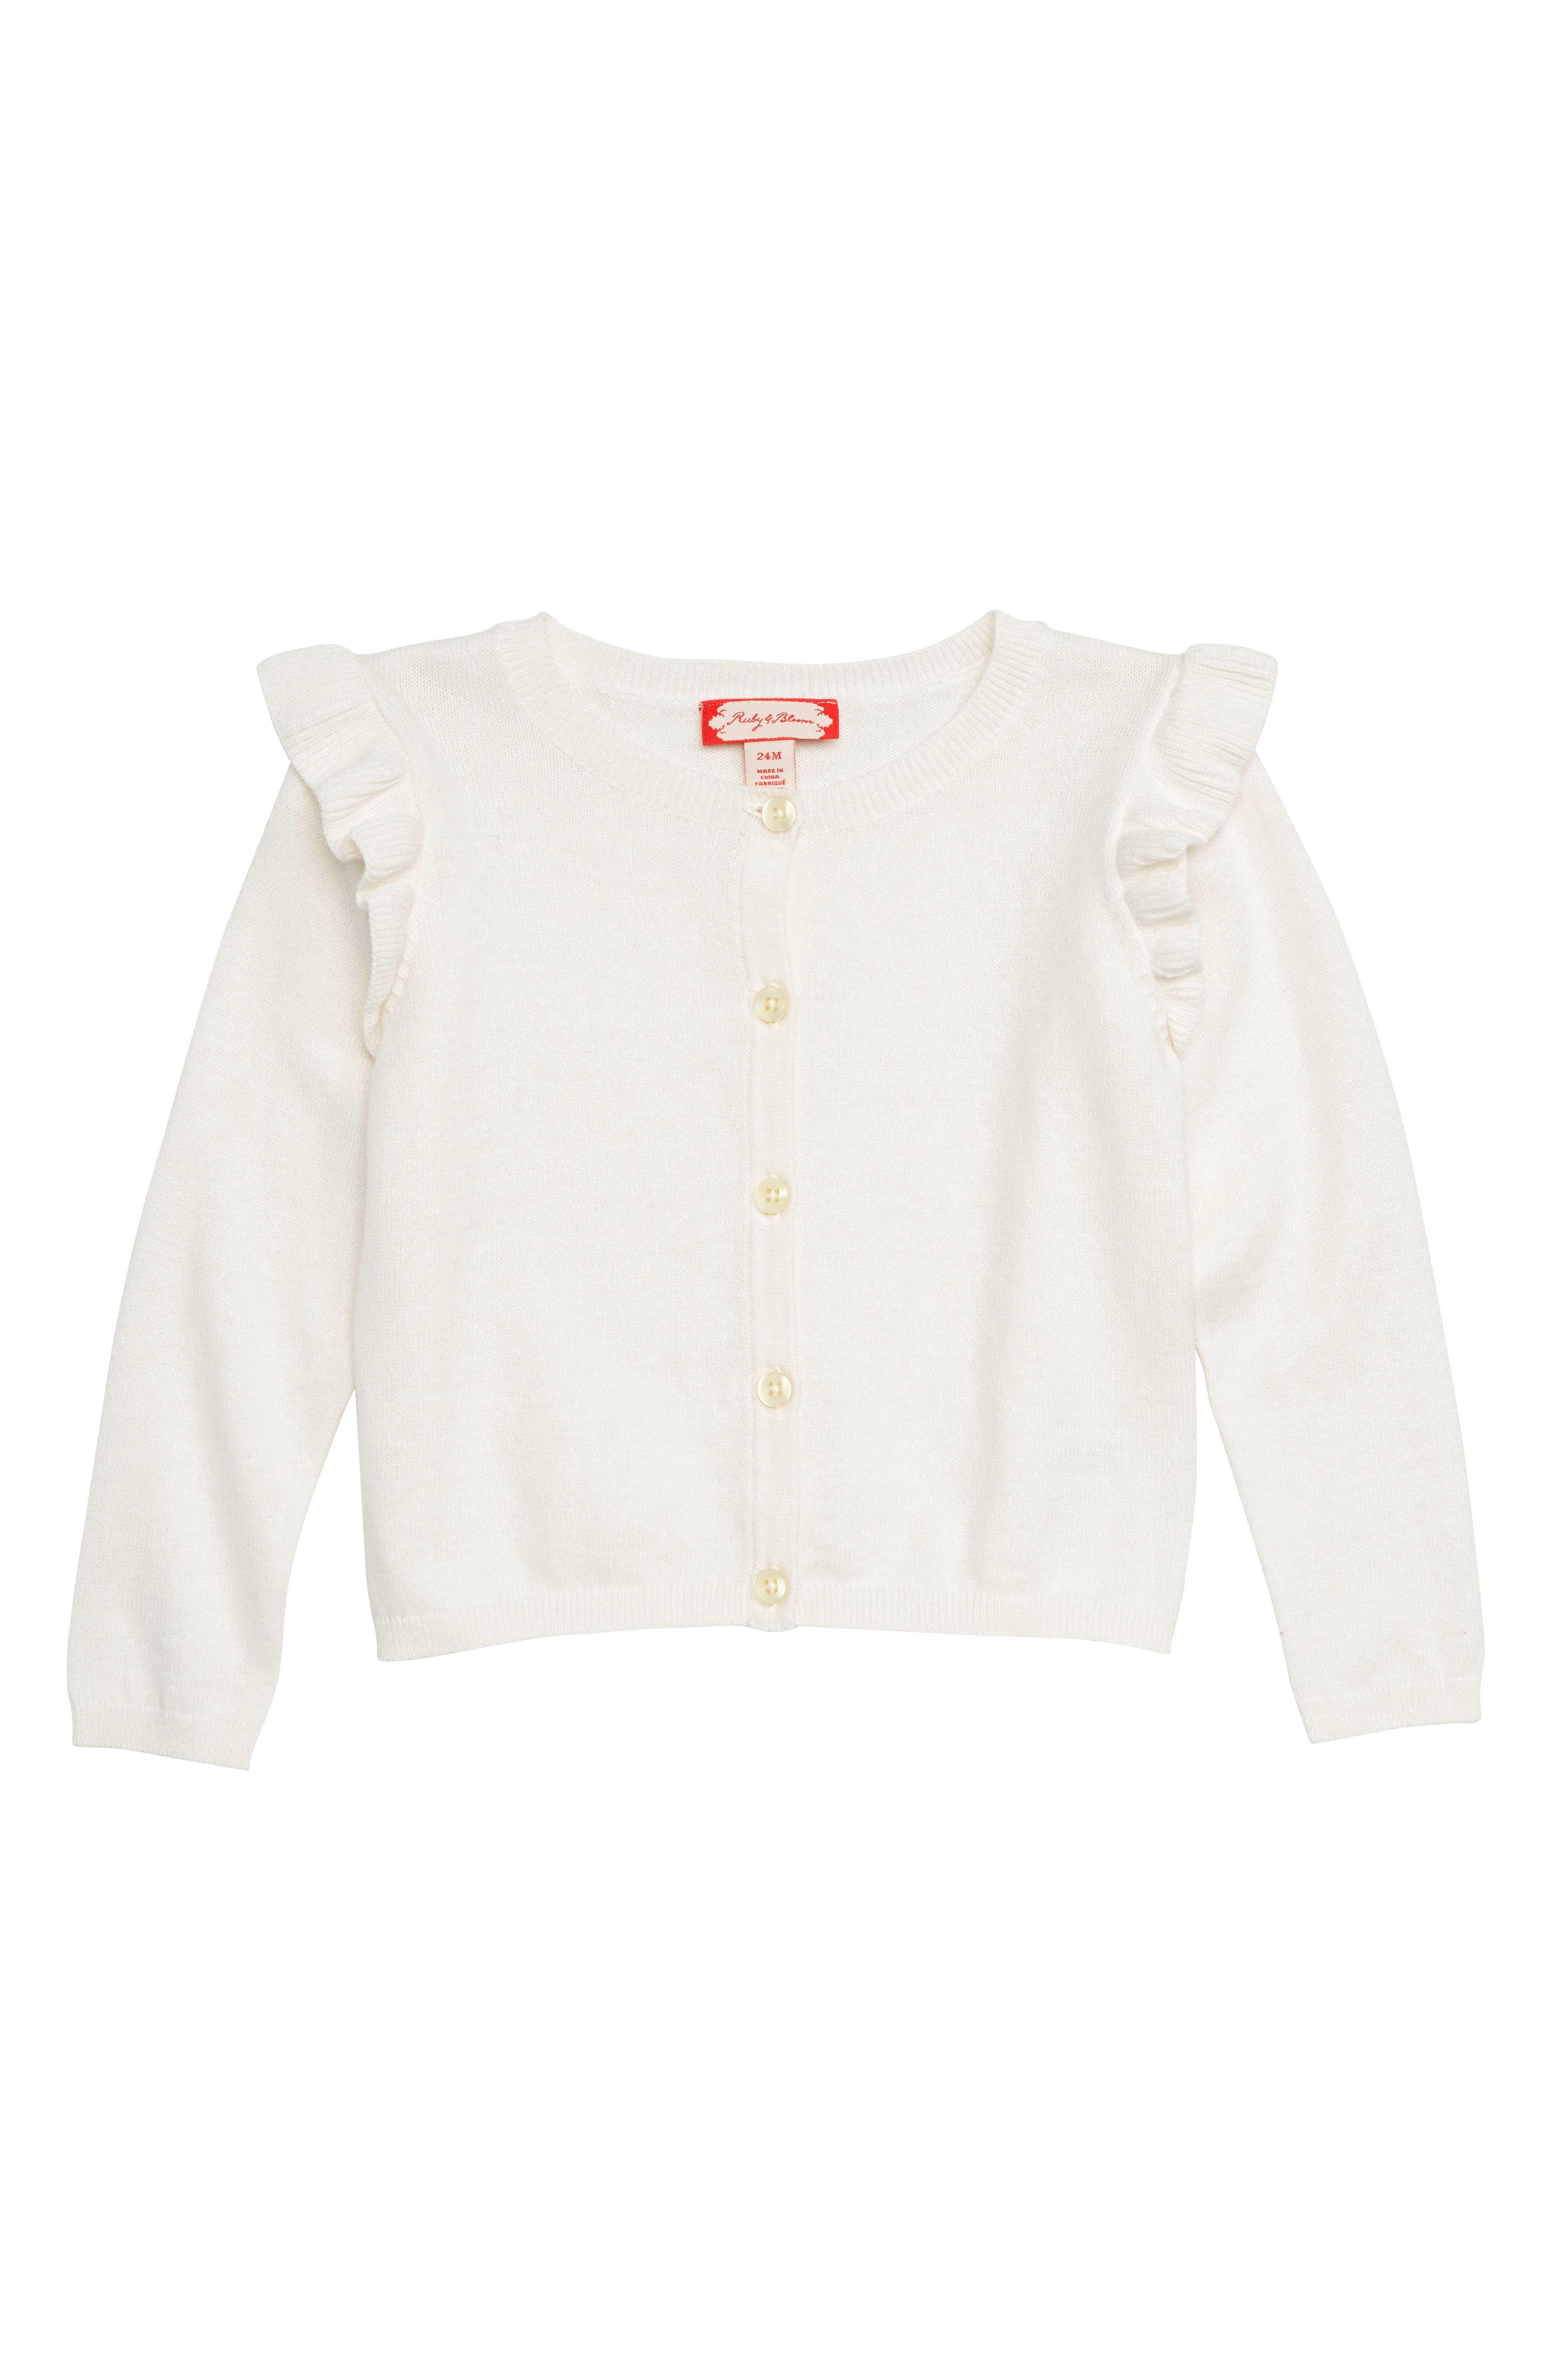 Ruffle Sleeve Cardigan,                             Main thumbnail 1, color,                             IVORY EGRET